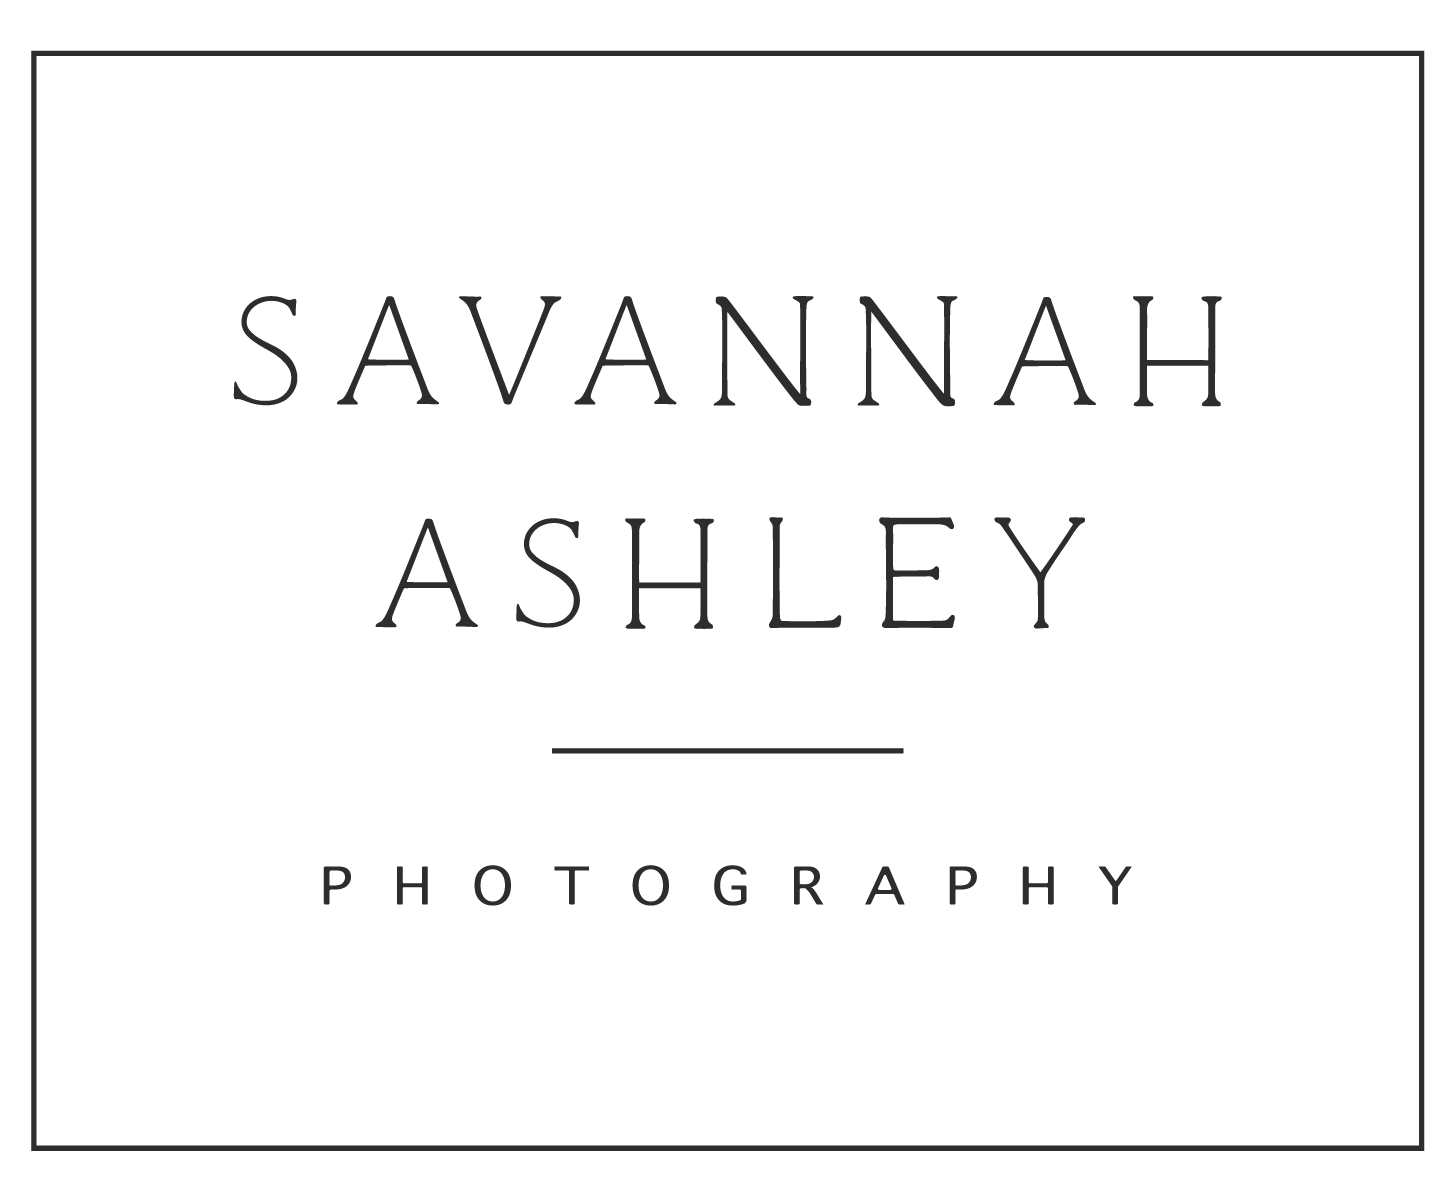 Savannah Ashley Photography